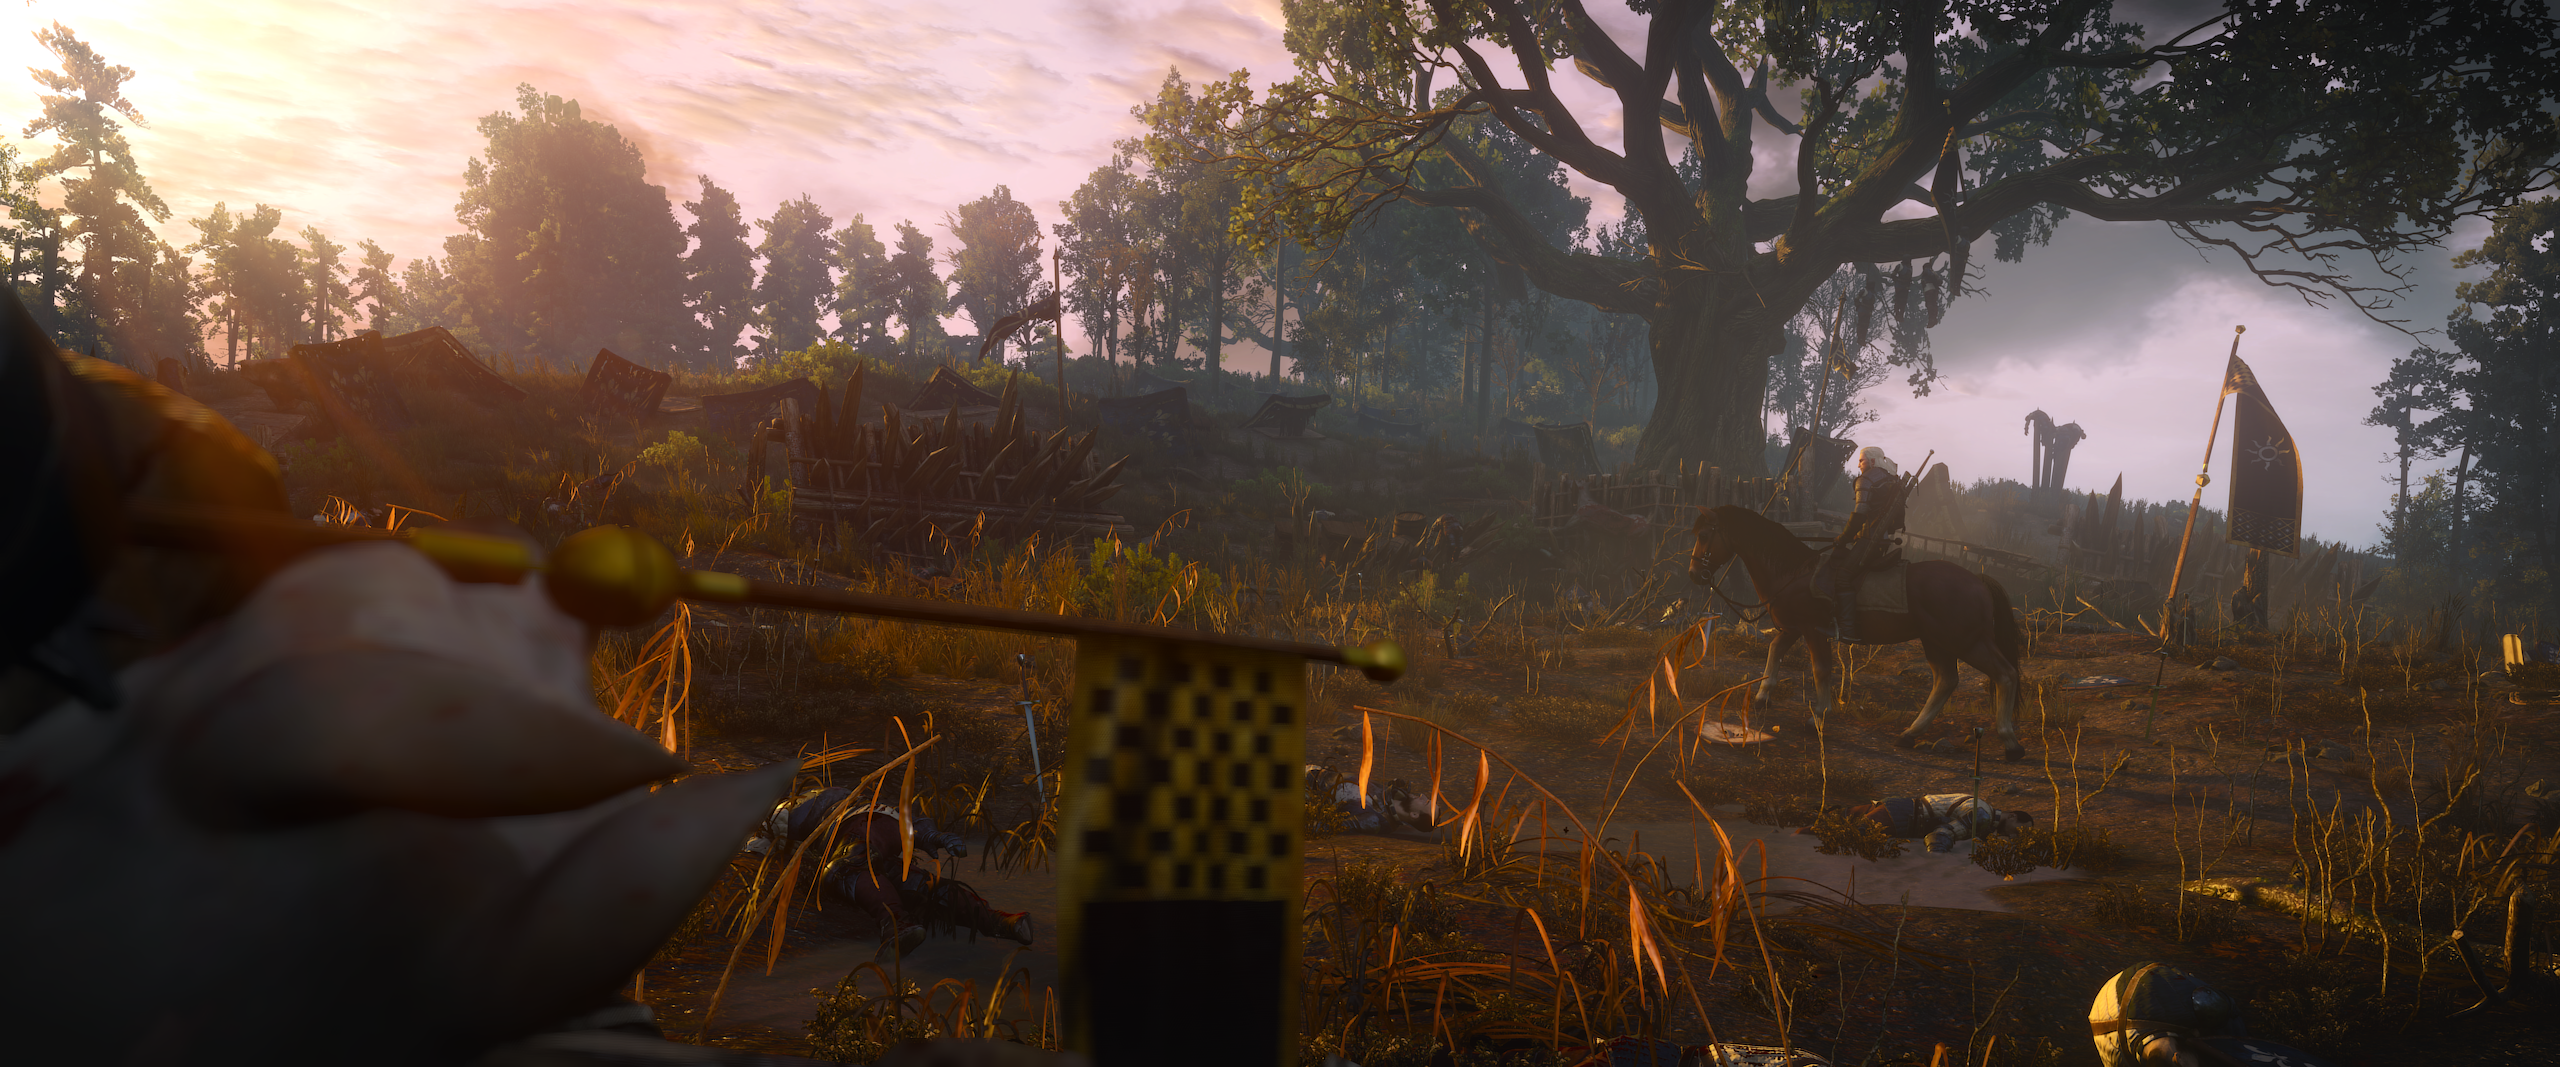 dawnofthedead.png - Witcher 3: Wild Hunt, the